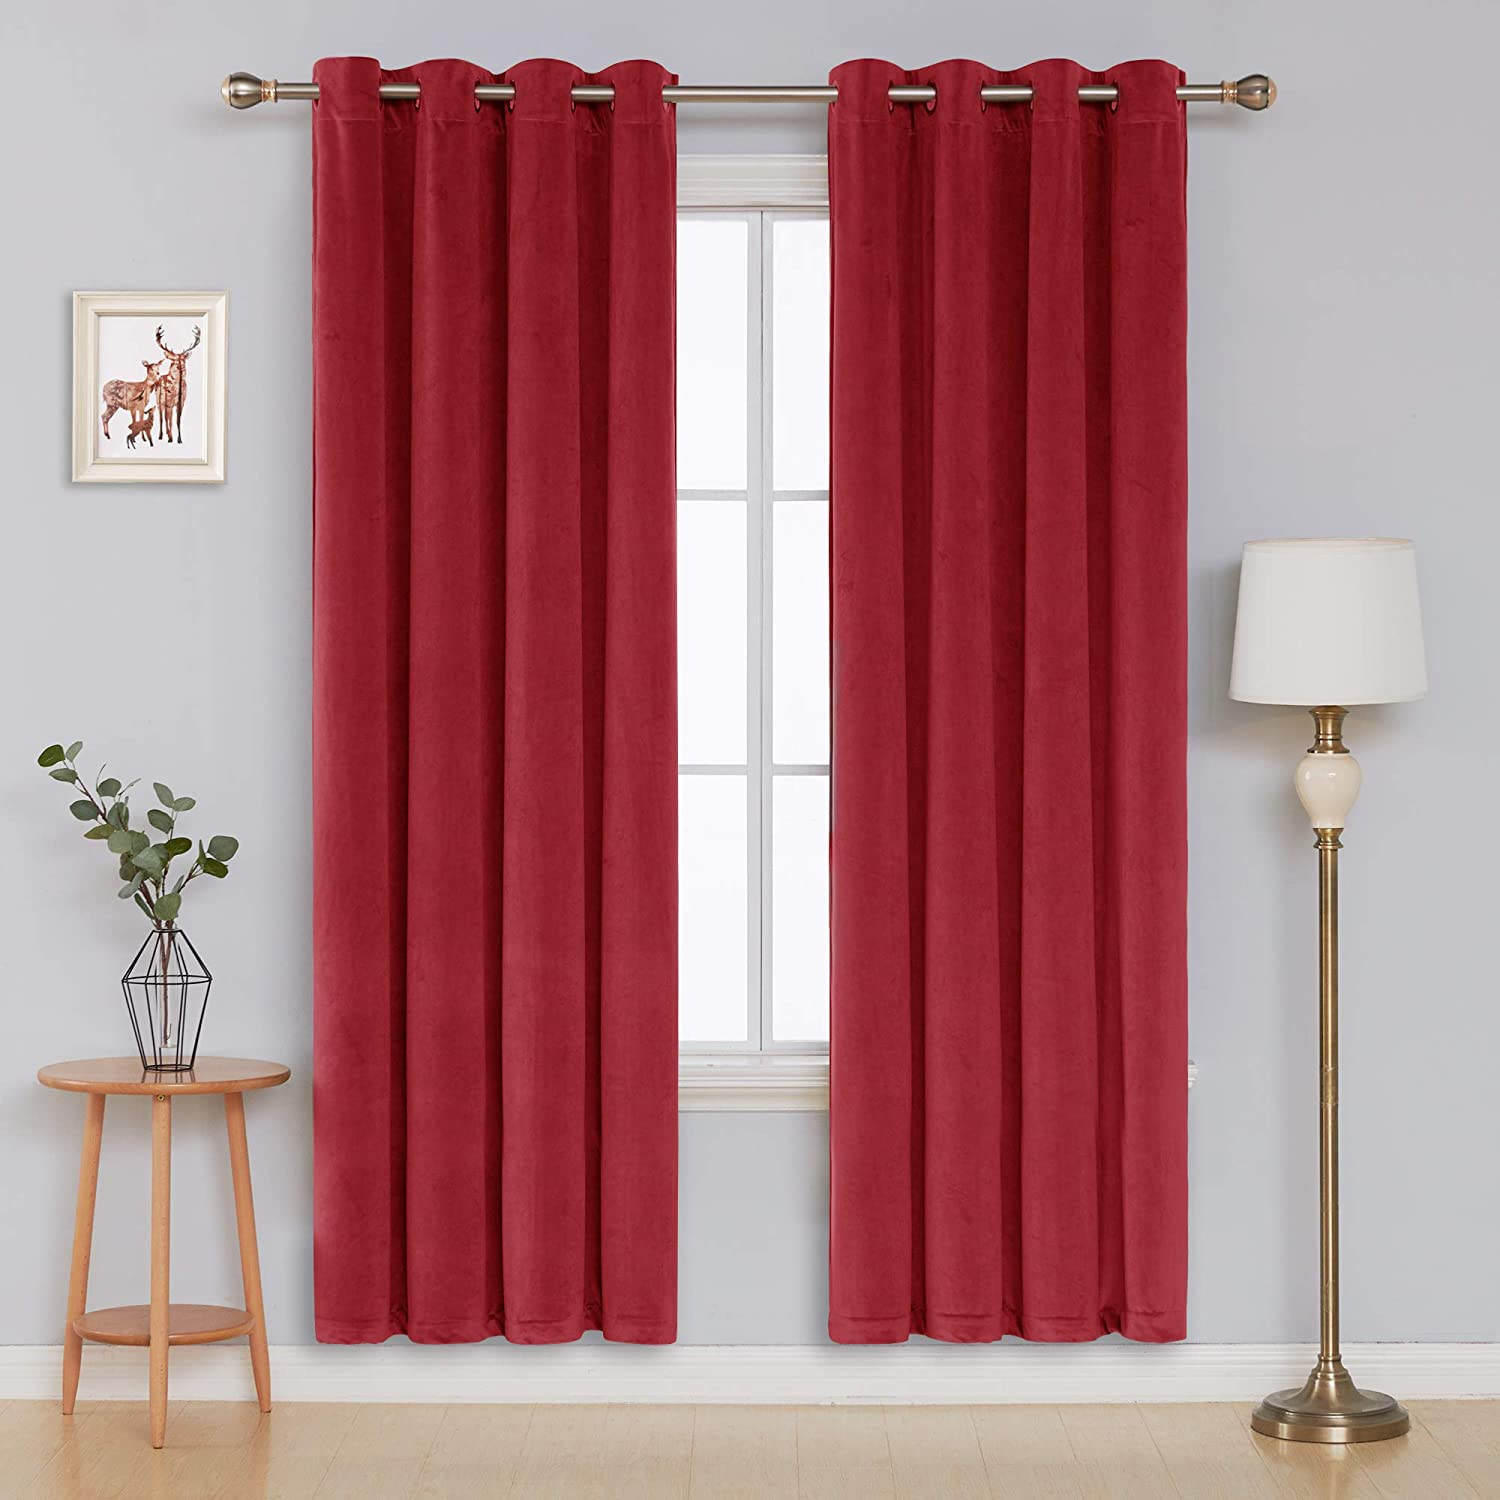 Top 8 Best Curtains For Noise Reduction - Buyer's Guide 2